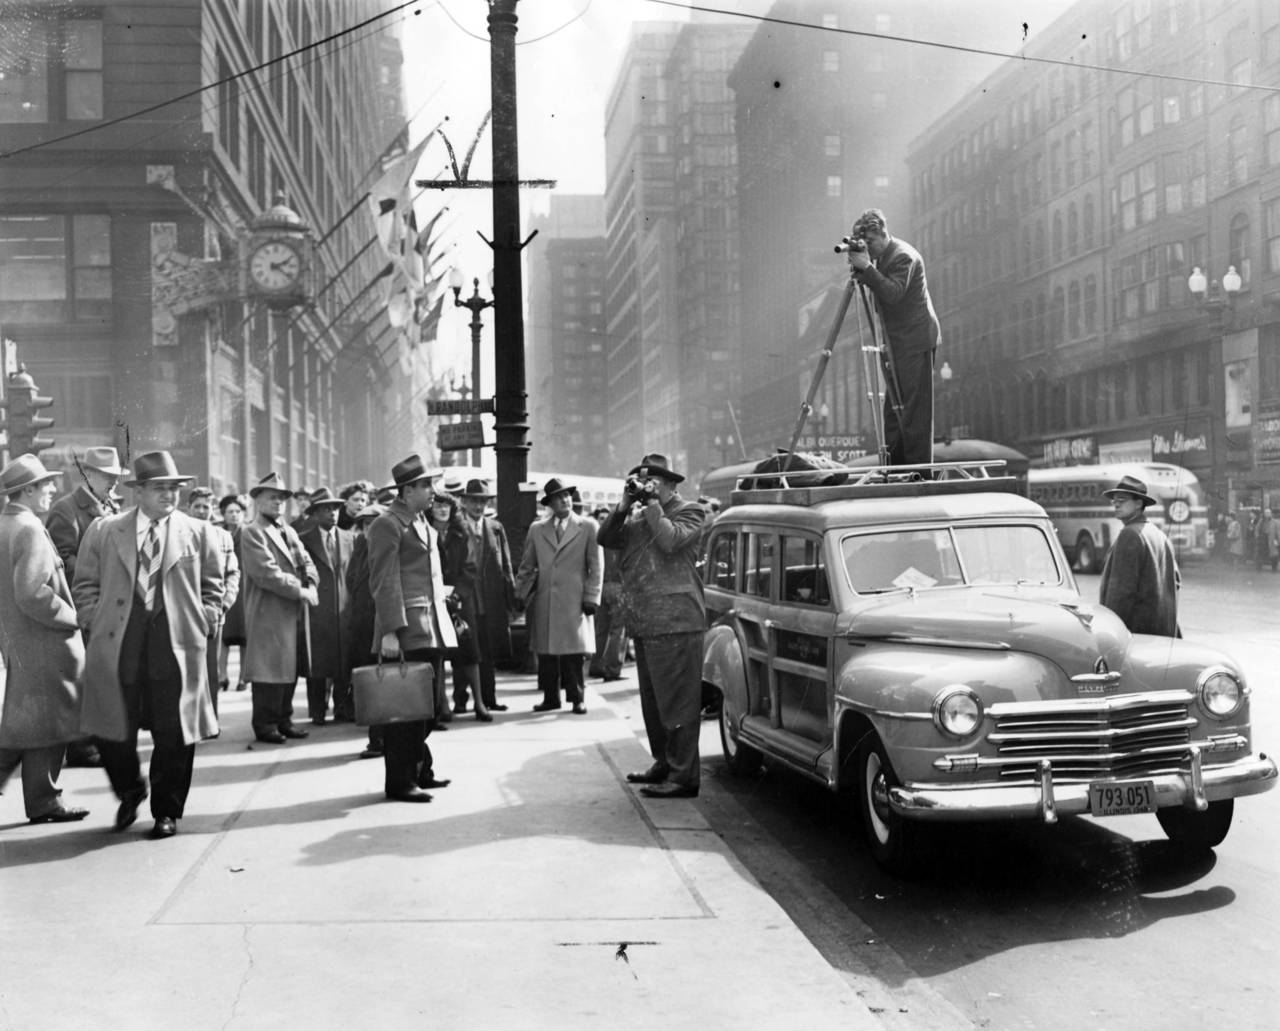 WGN-TV newsreel photographers Fred Giese, on the curb, and Leonard Bartholomew, positioned on the car, shoot pictures in the Loop on March 22, 1948. This photo ran on April 4, 1948 with the announcement in the Tribune that WGN-TV would started its transmission the next day. Both Giese and Bartholomew were the first cameramen appointed to the eight man WGN-TV Newsreel staff. Bartholomew had been a veteran still photographer for the Tribune who earned the nickname